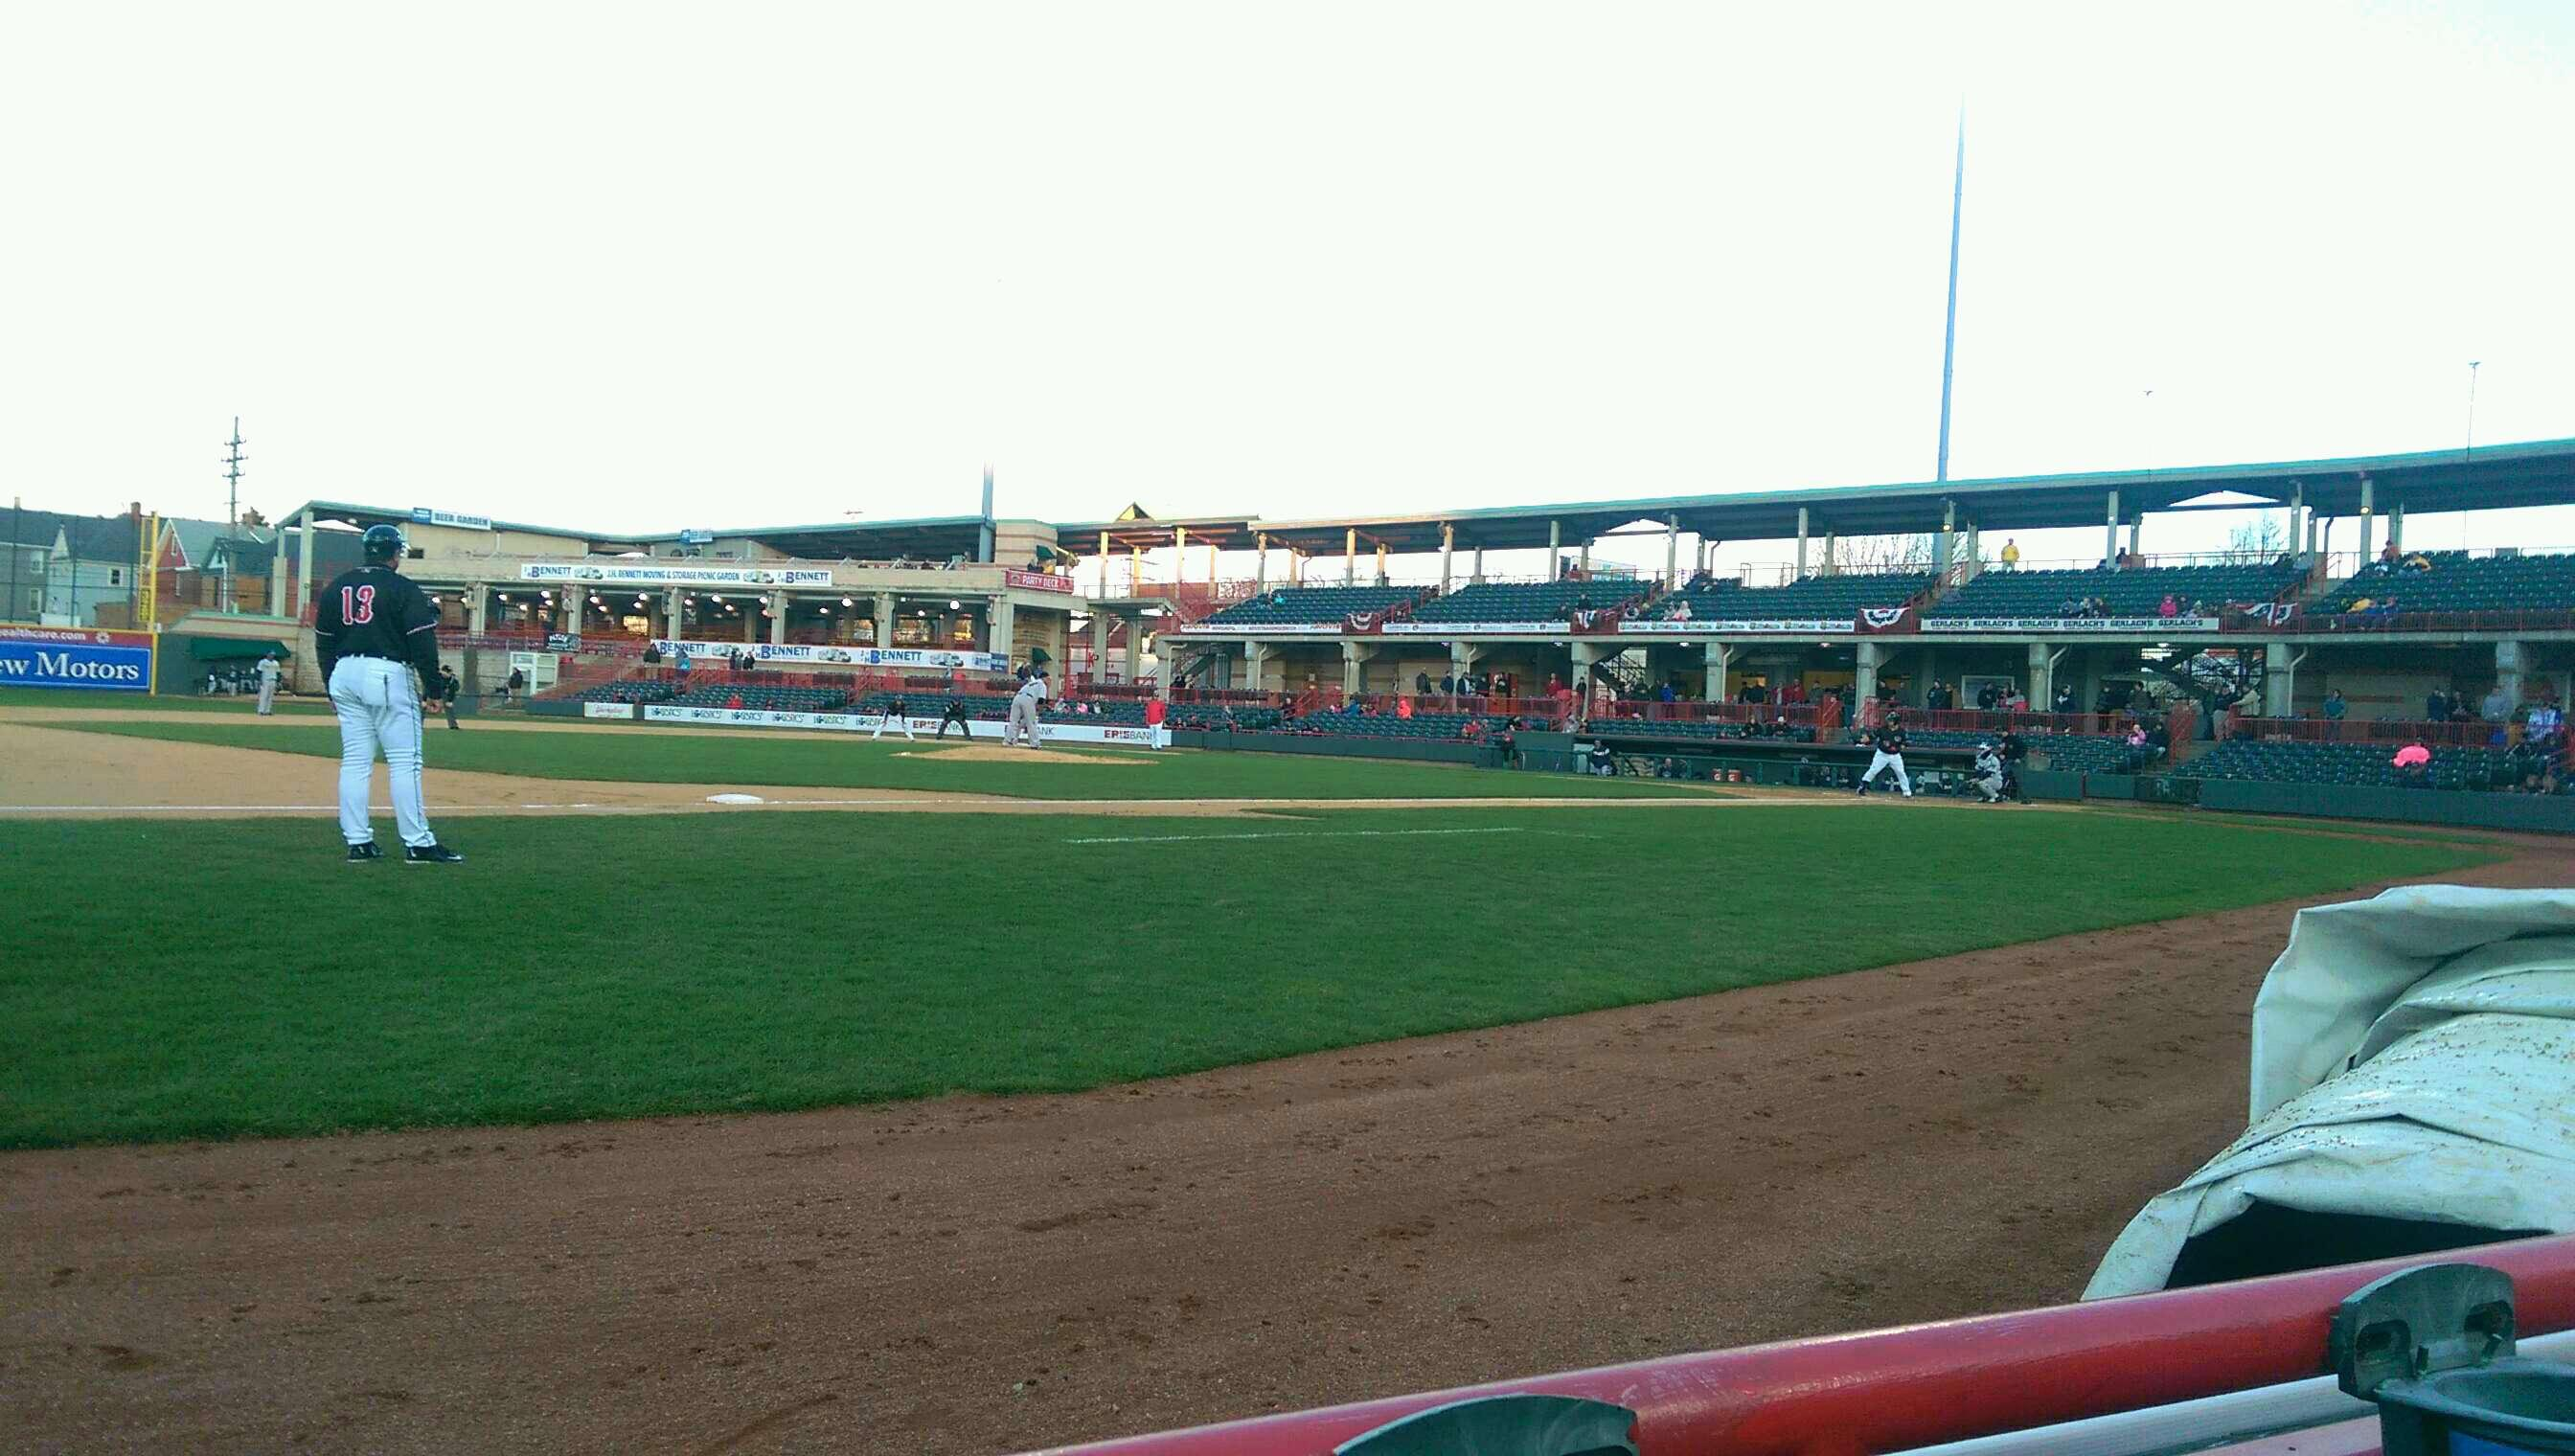 UPMC Park Section 114 Row A Seat 3